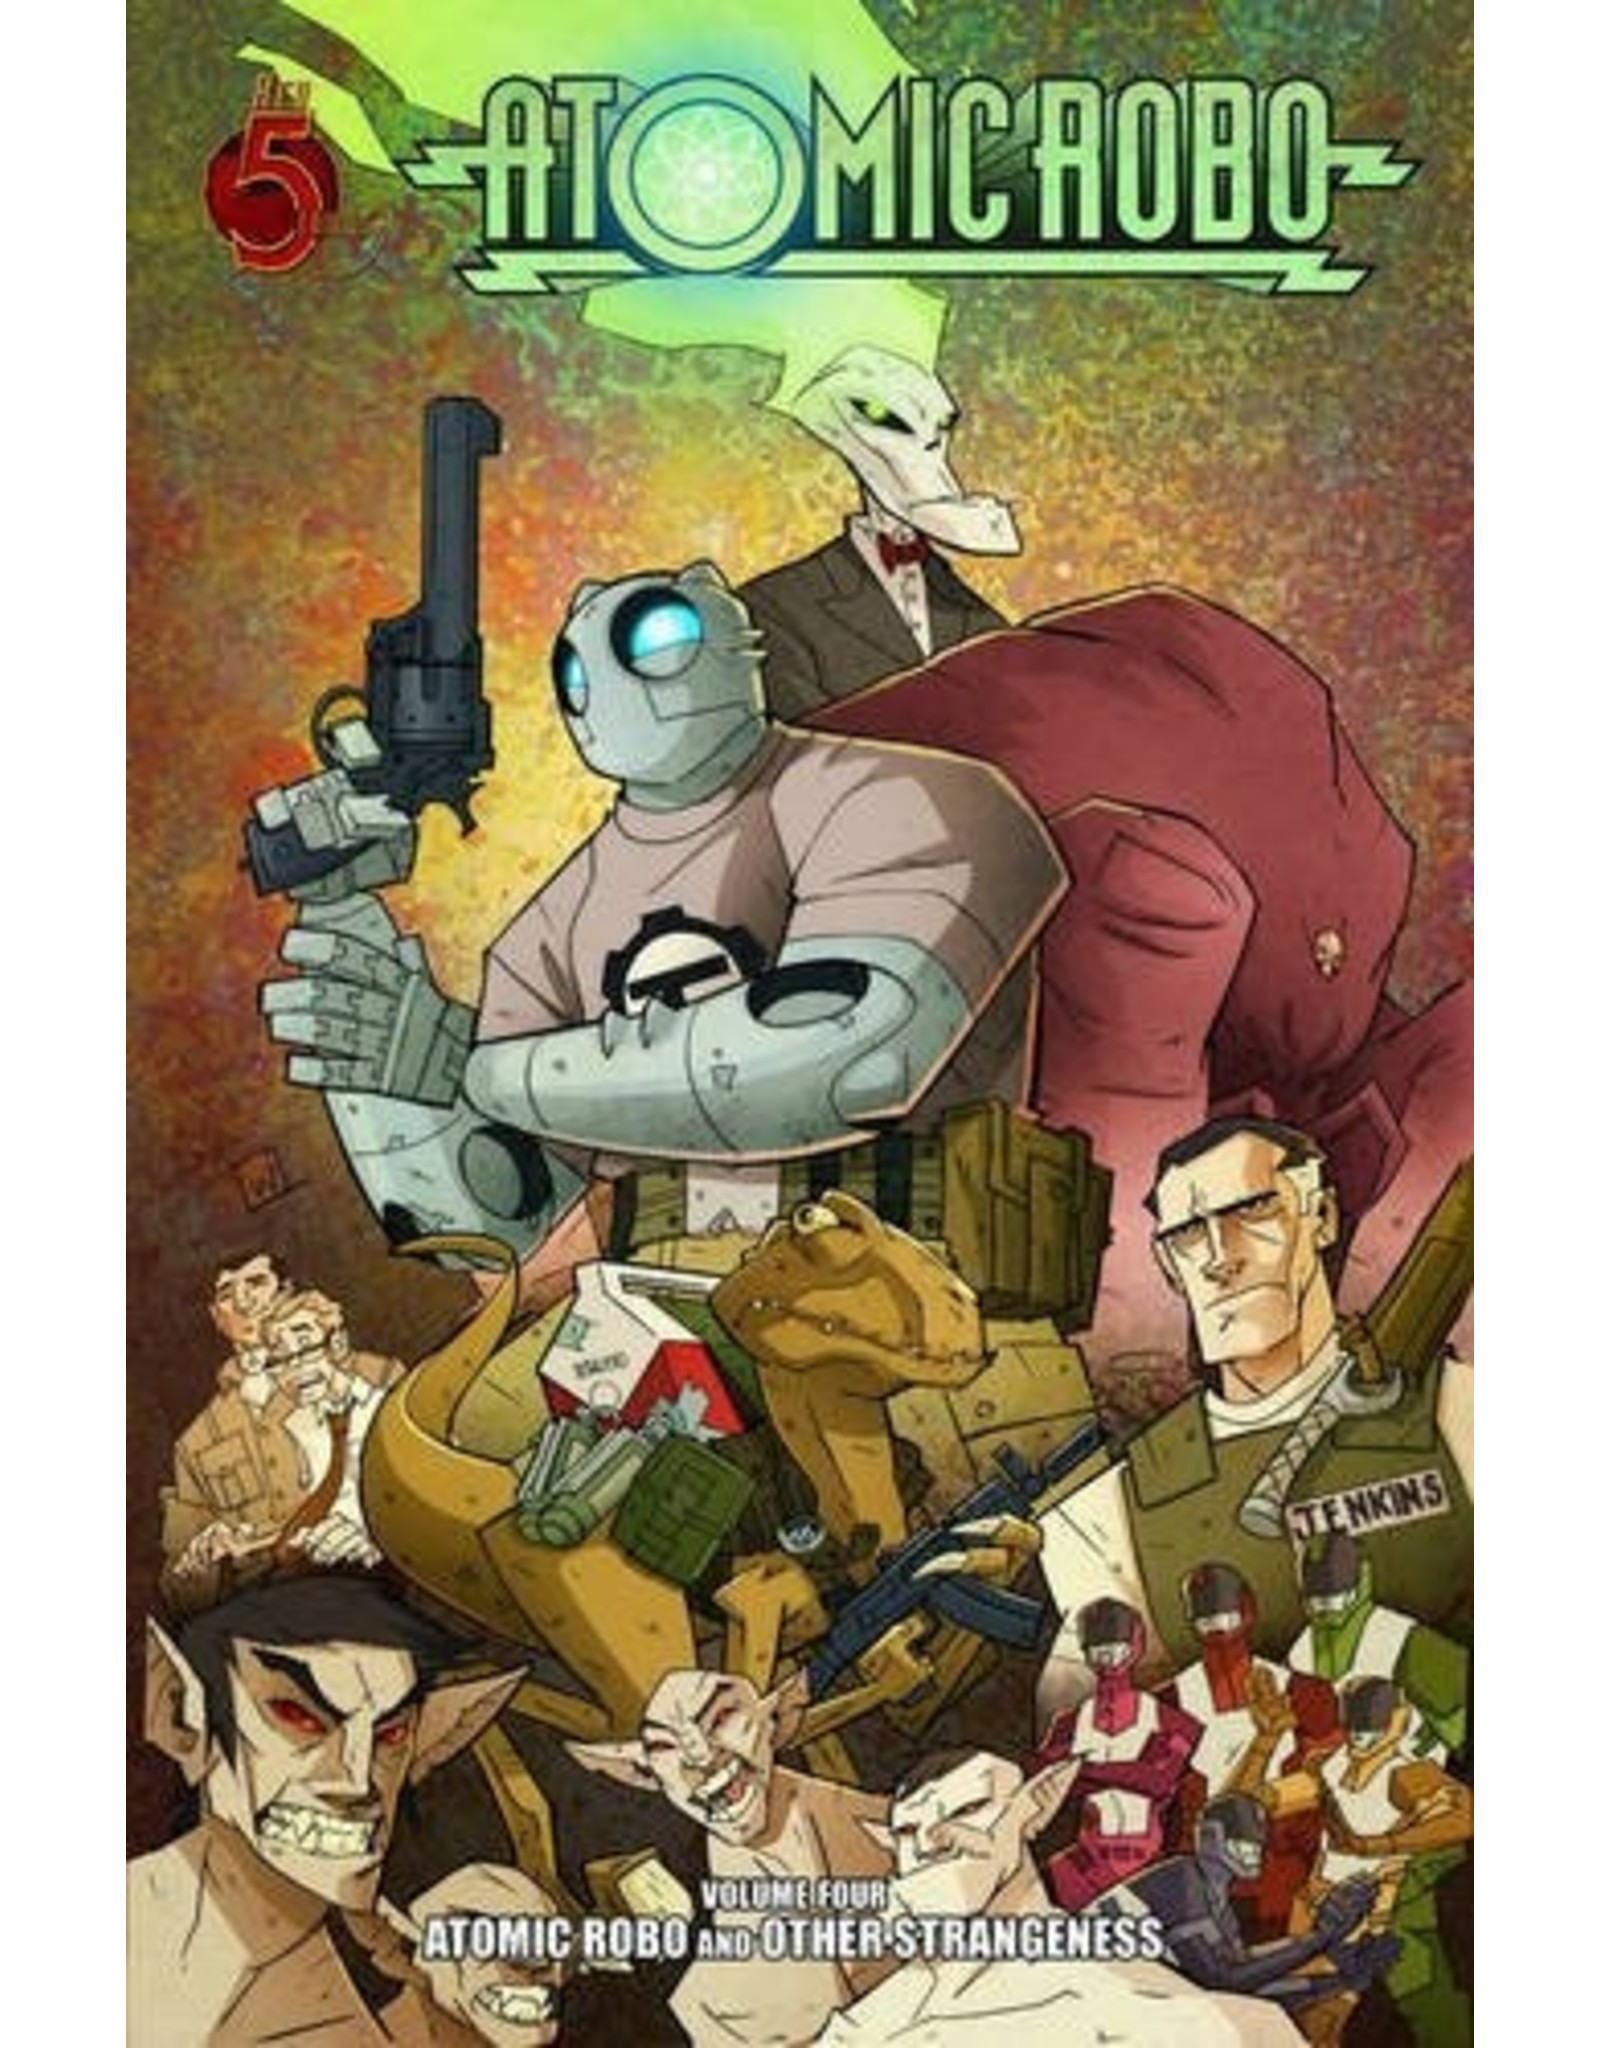 RED 5 COMICS ATOMIC ROBO TP VOL 04 OTHER STRANGENESS